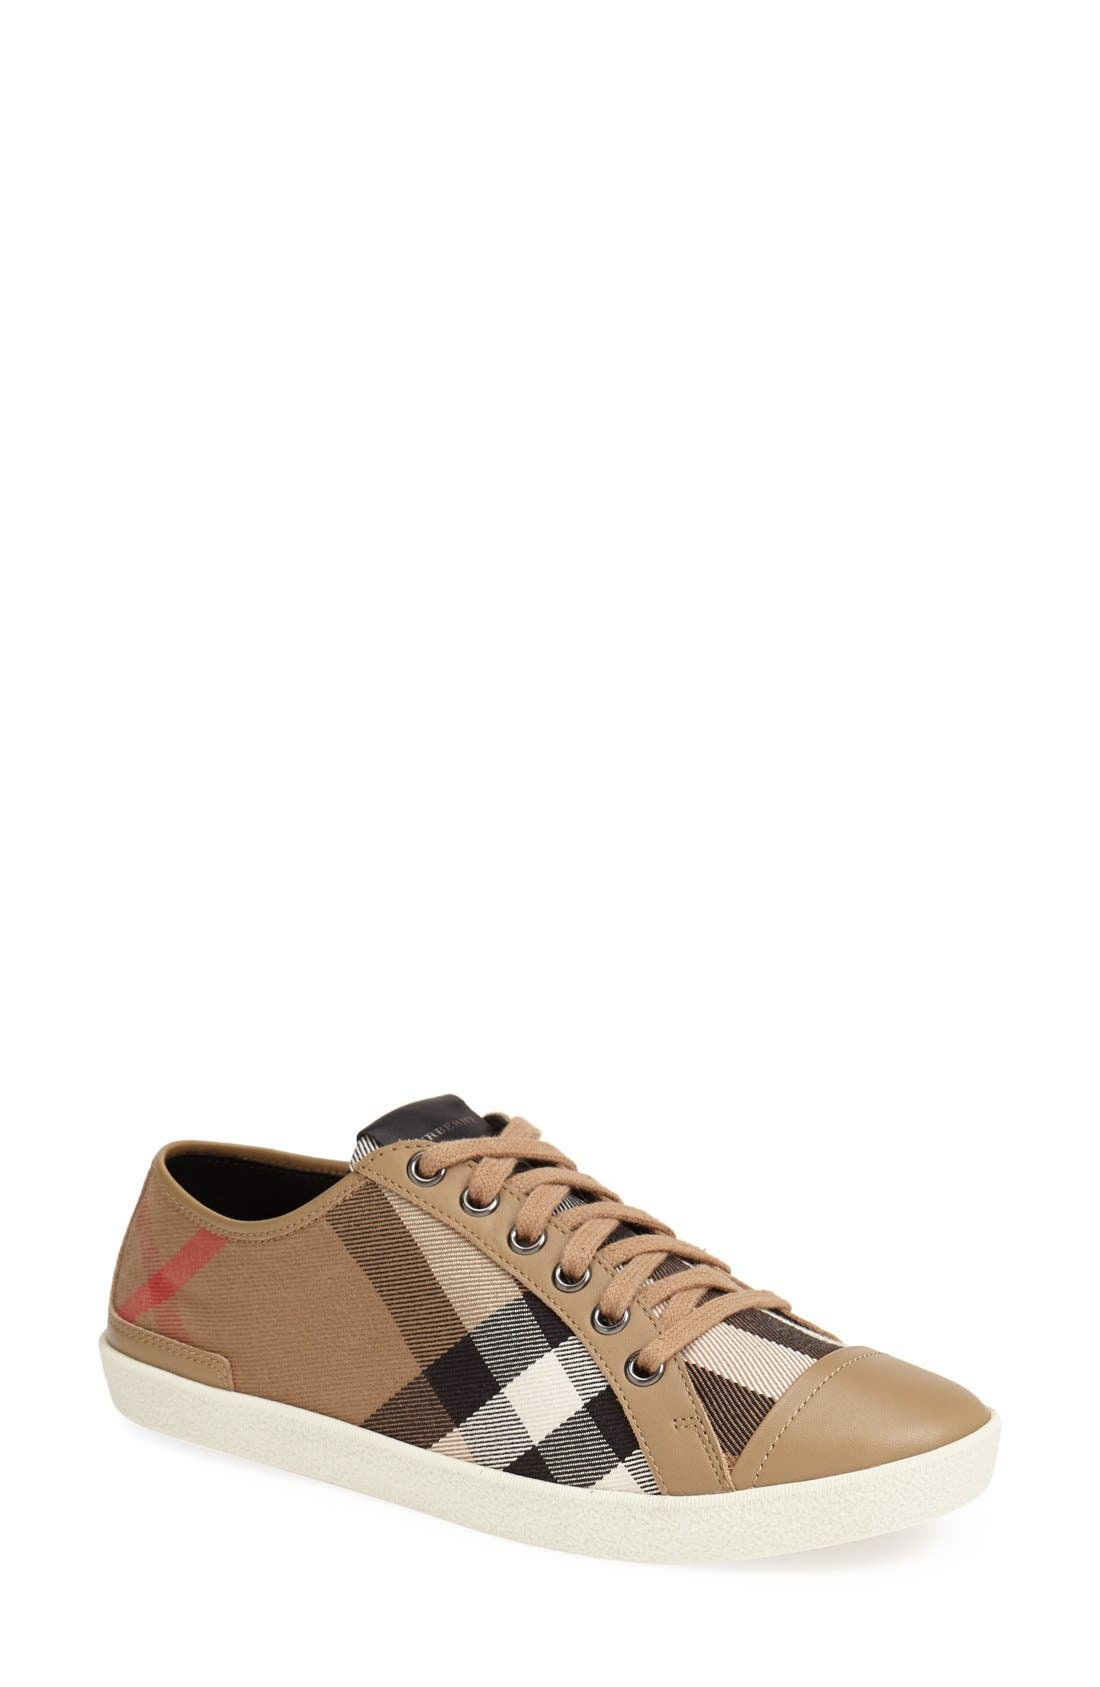 Alternate Image 1 Selected - Burberry Check Print Sneaker (Women)